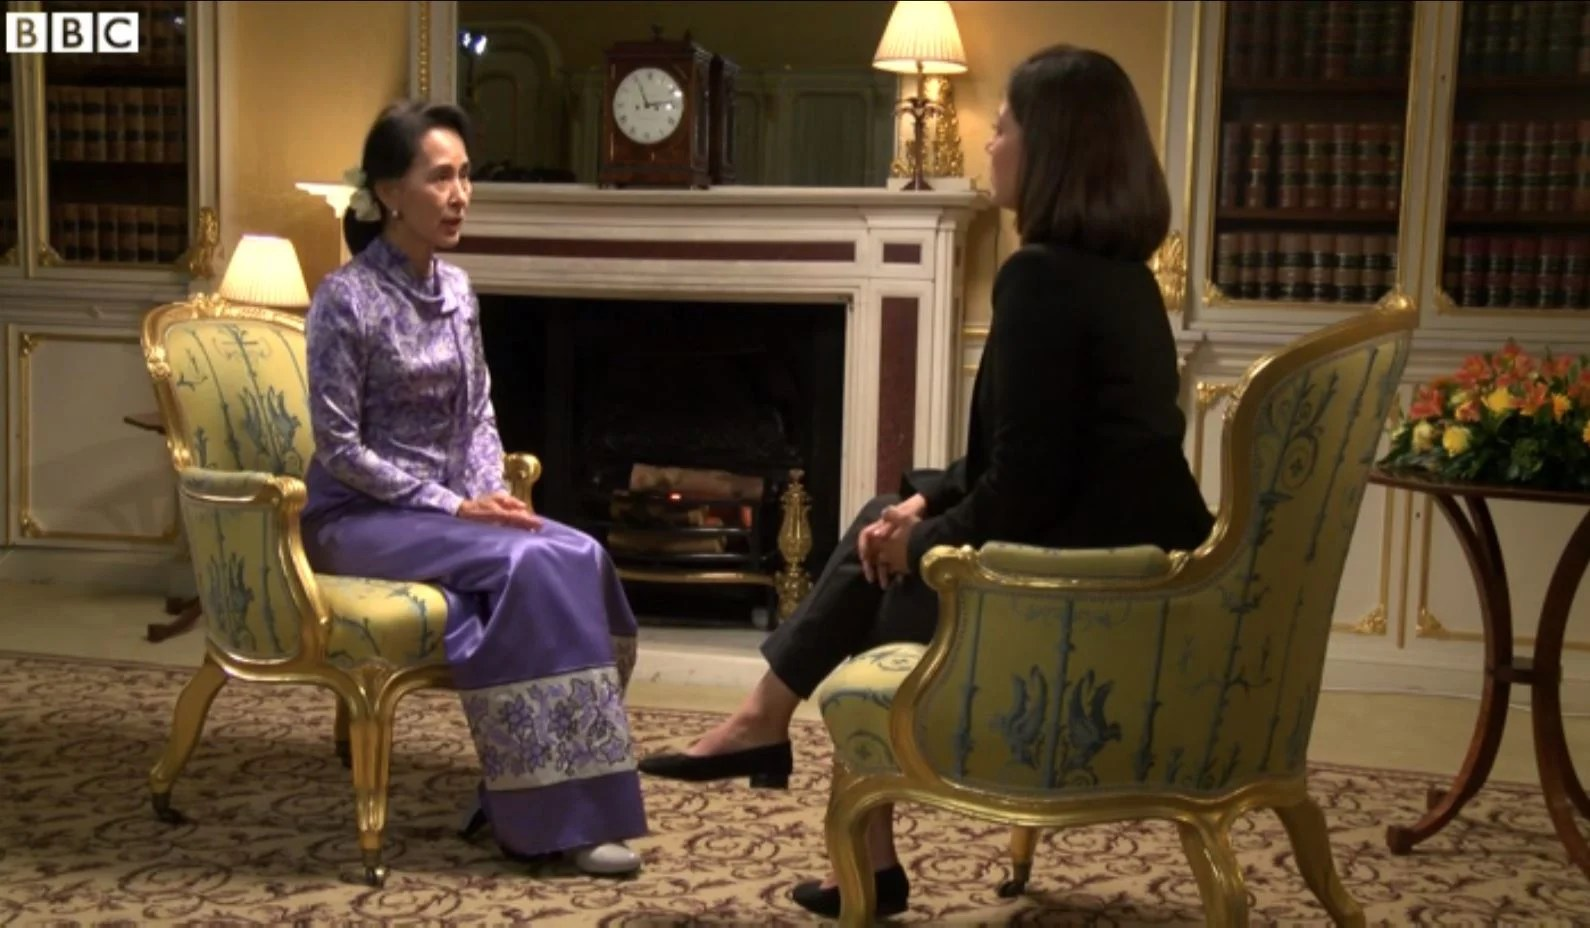 Aung San Suu Kyi made angry \u0026#39;Muslim\u0026#39; comment after tense exchange with BBC presenter Mishal